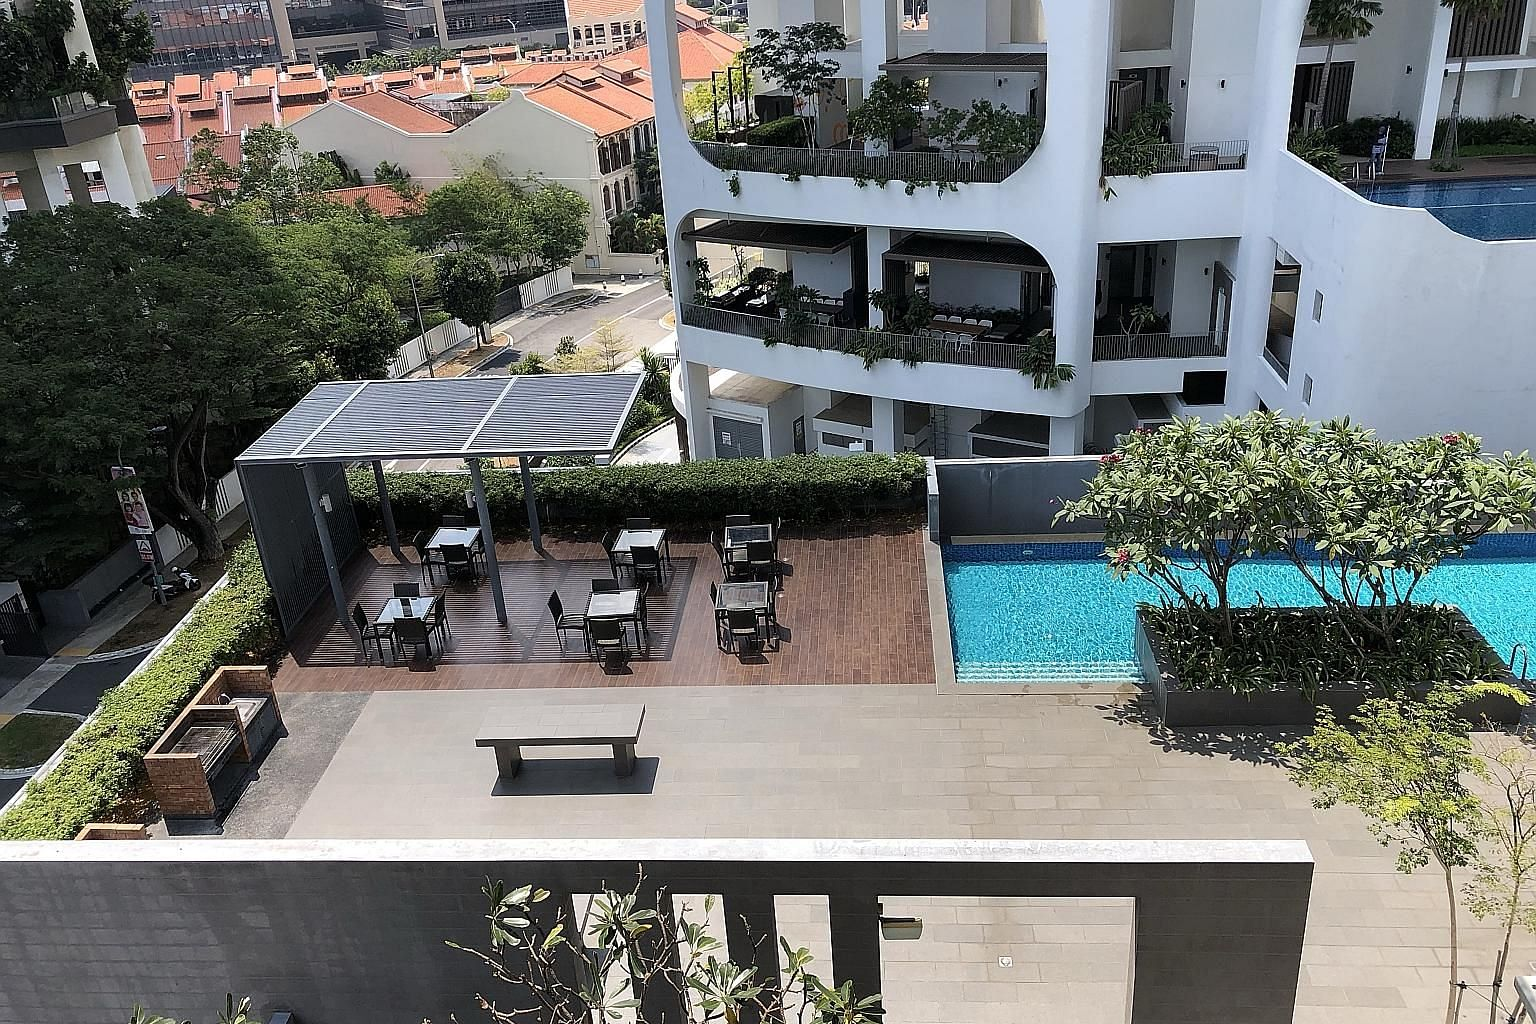 Mr Nasiari Sunee, a grandfather of nine, was at the condominium for a relative's housewarming party on Sunday when the incident took place. He was taken to Singapore General Hospital, where he died on Monday morning. The barbecue pit area on level fi